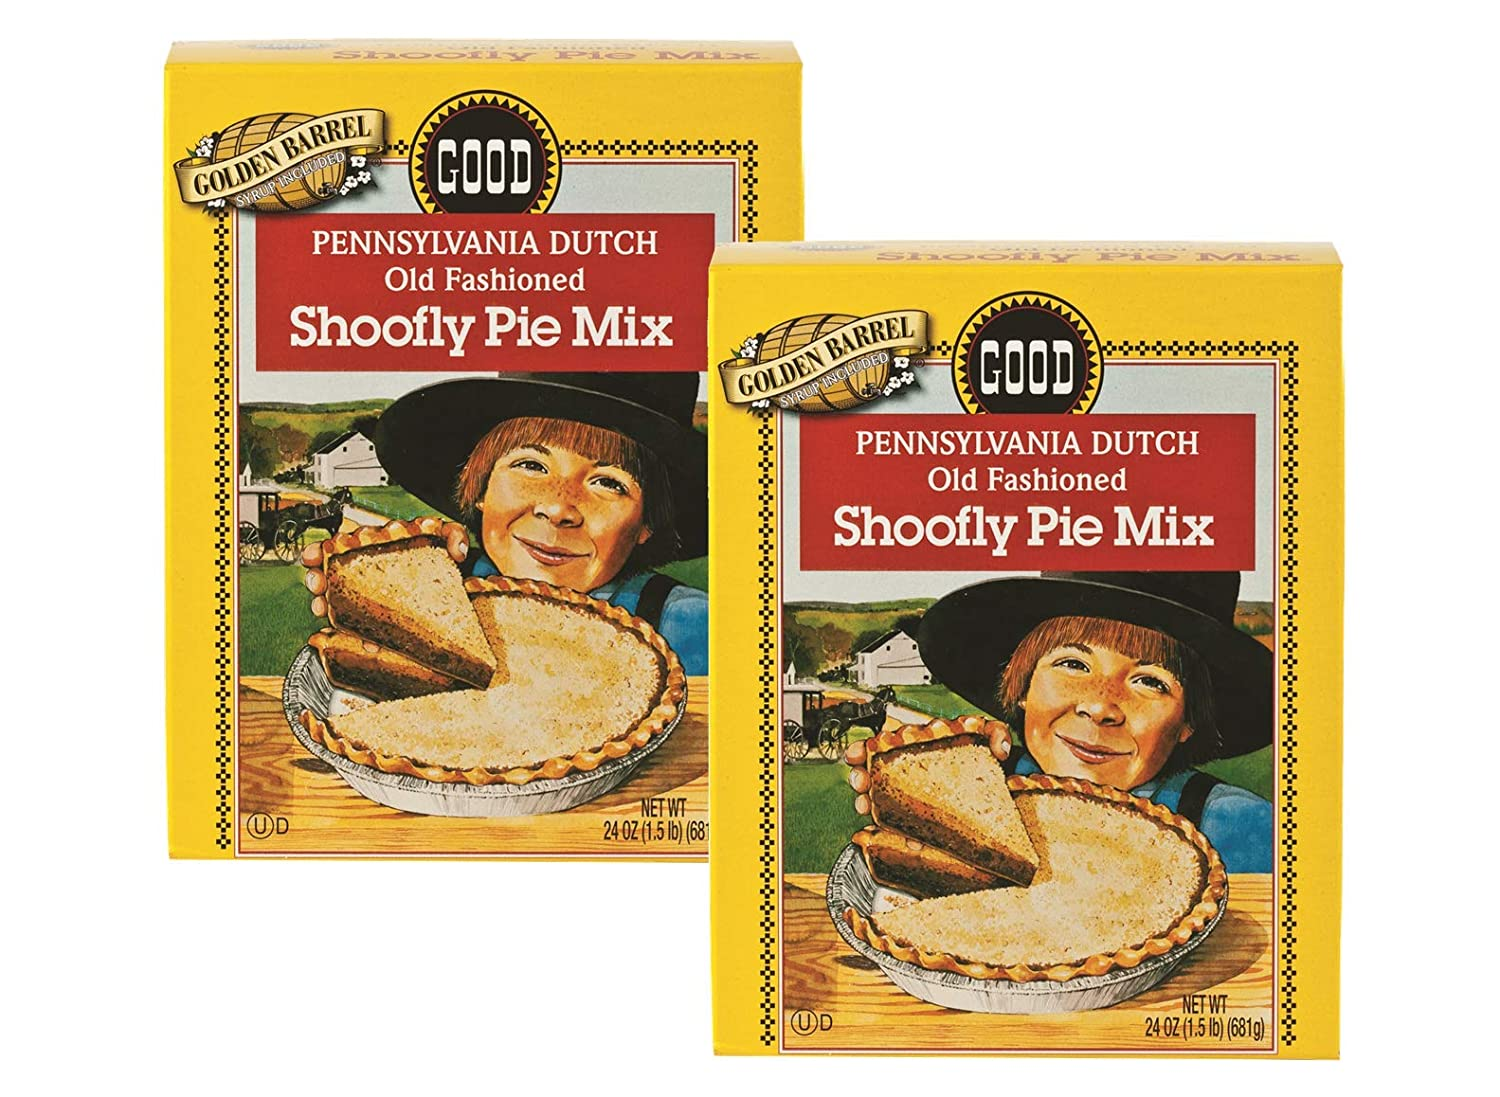 Golden Barrel Pennsylvania Dutch Old Fashioned Shoofly Pie Mix With Syrup- Two 24 oz. Boxes